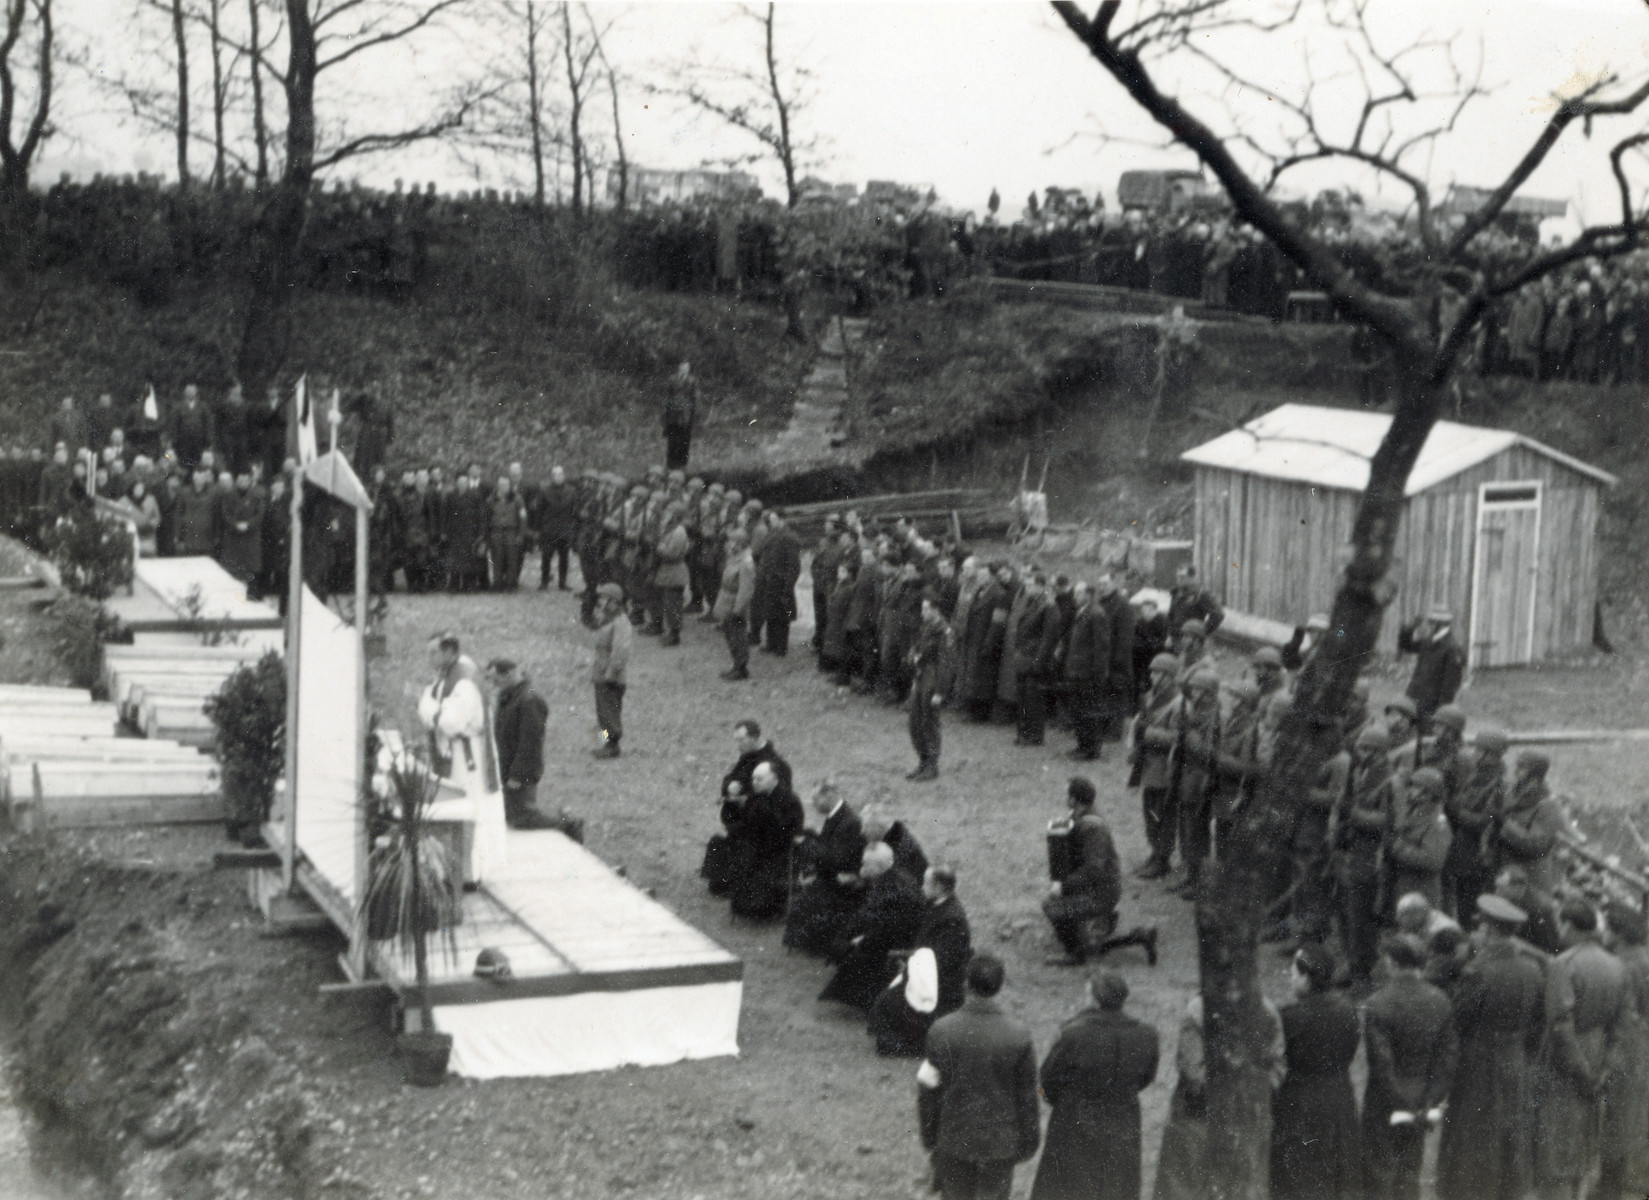 Priests lead a prayer service for the Christian victims of the Pocking concentration camp.